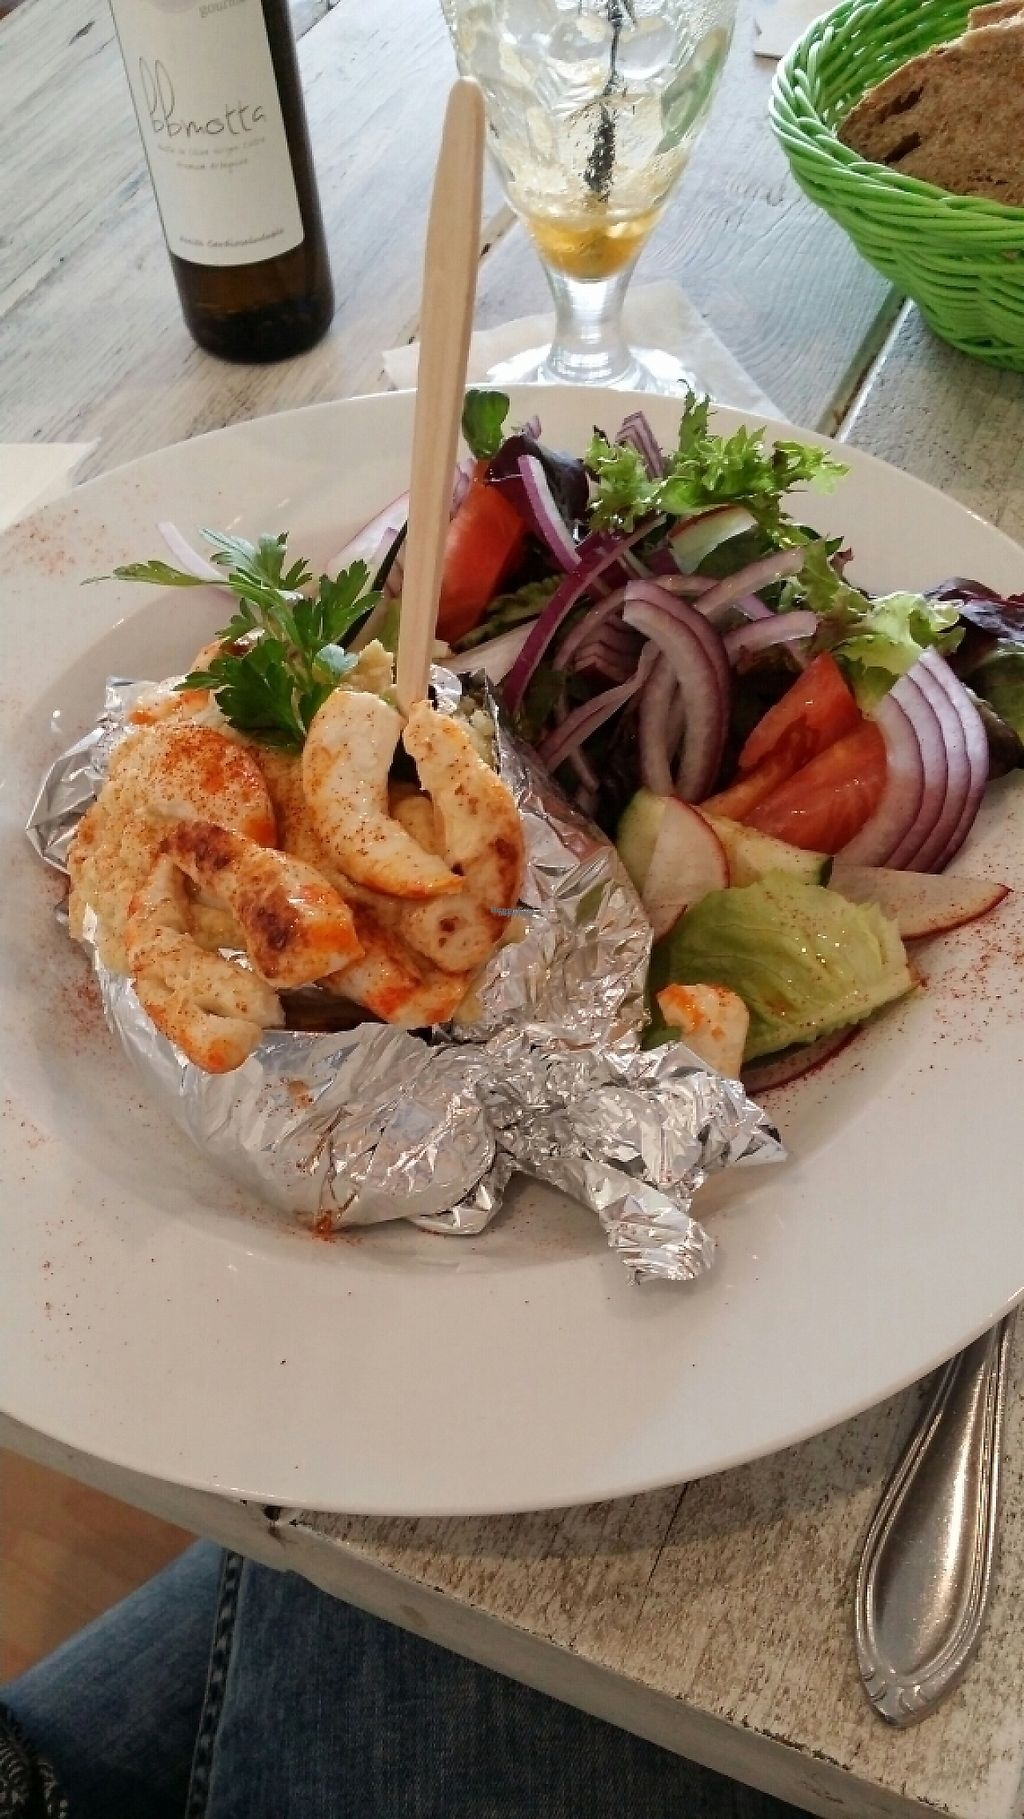 """Photo of The Green Box  by <a href=""""/members/profile/Lenalita"""">Lenalita</a> <br/>Baked potatoes with vegan Shrimps and hummus <br/> April 7, 2017  - <a href='/contact/abuse/image/81847/245507'>Report</a>"""